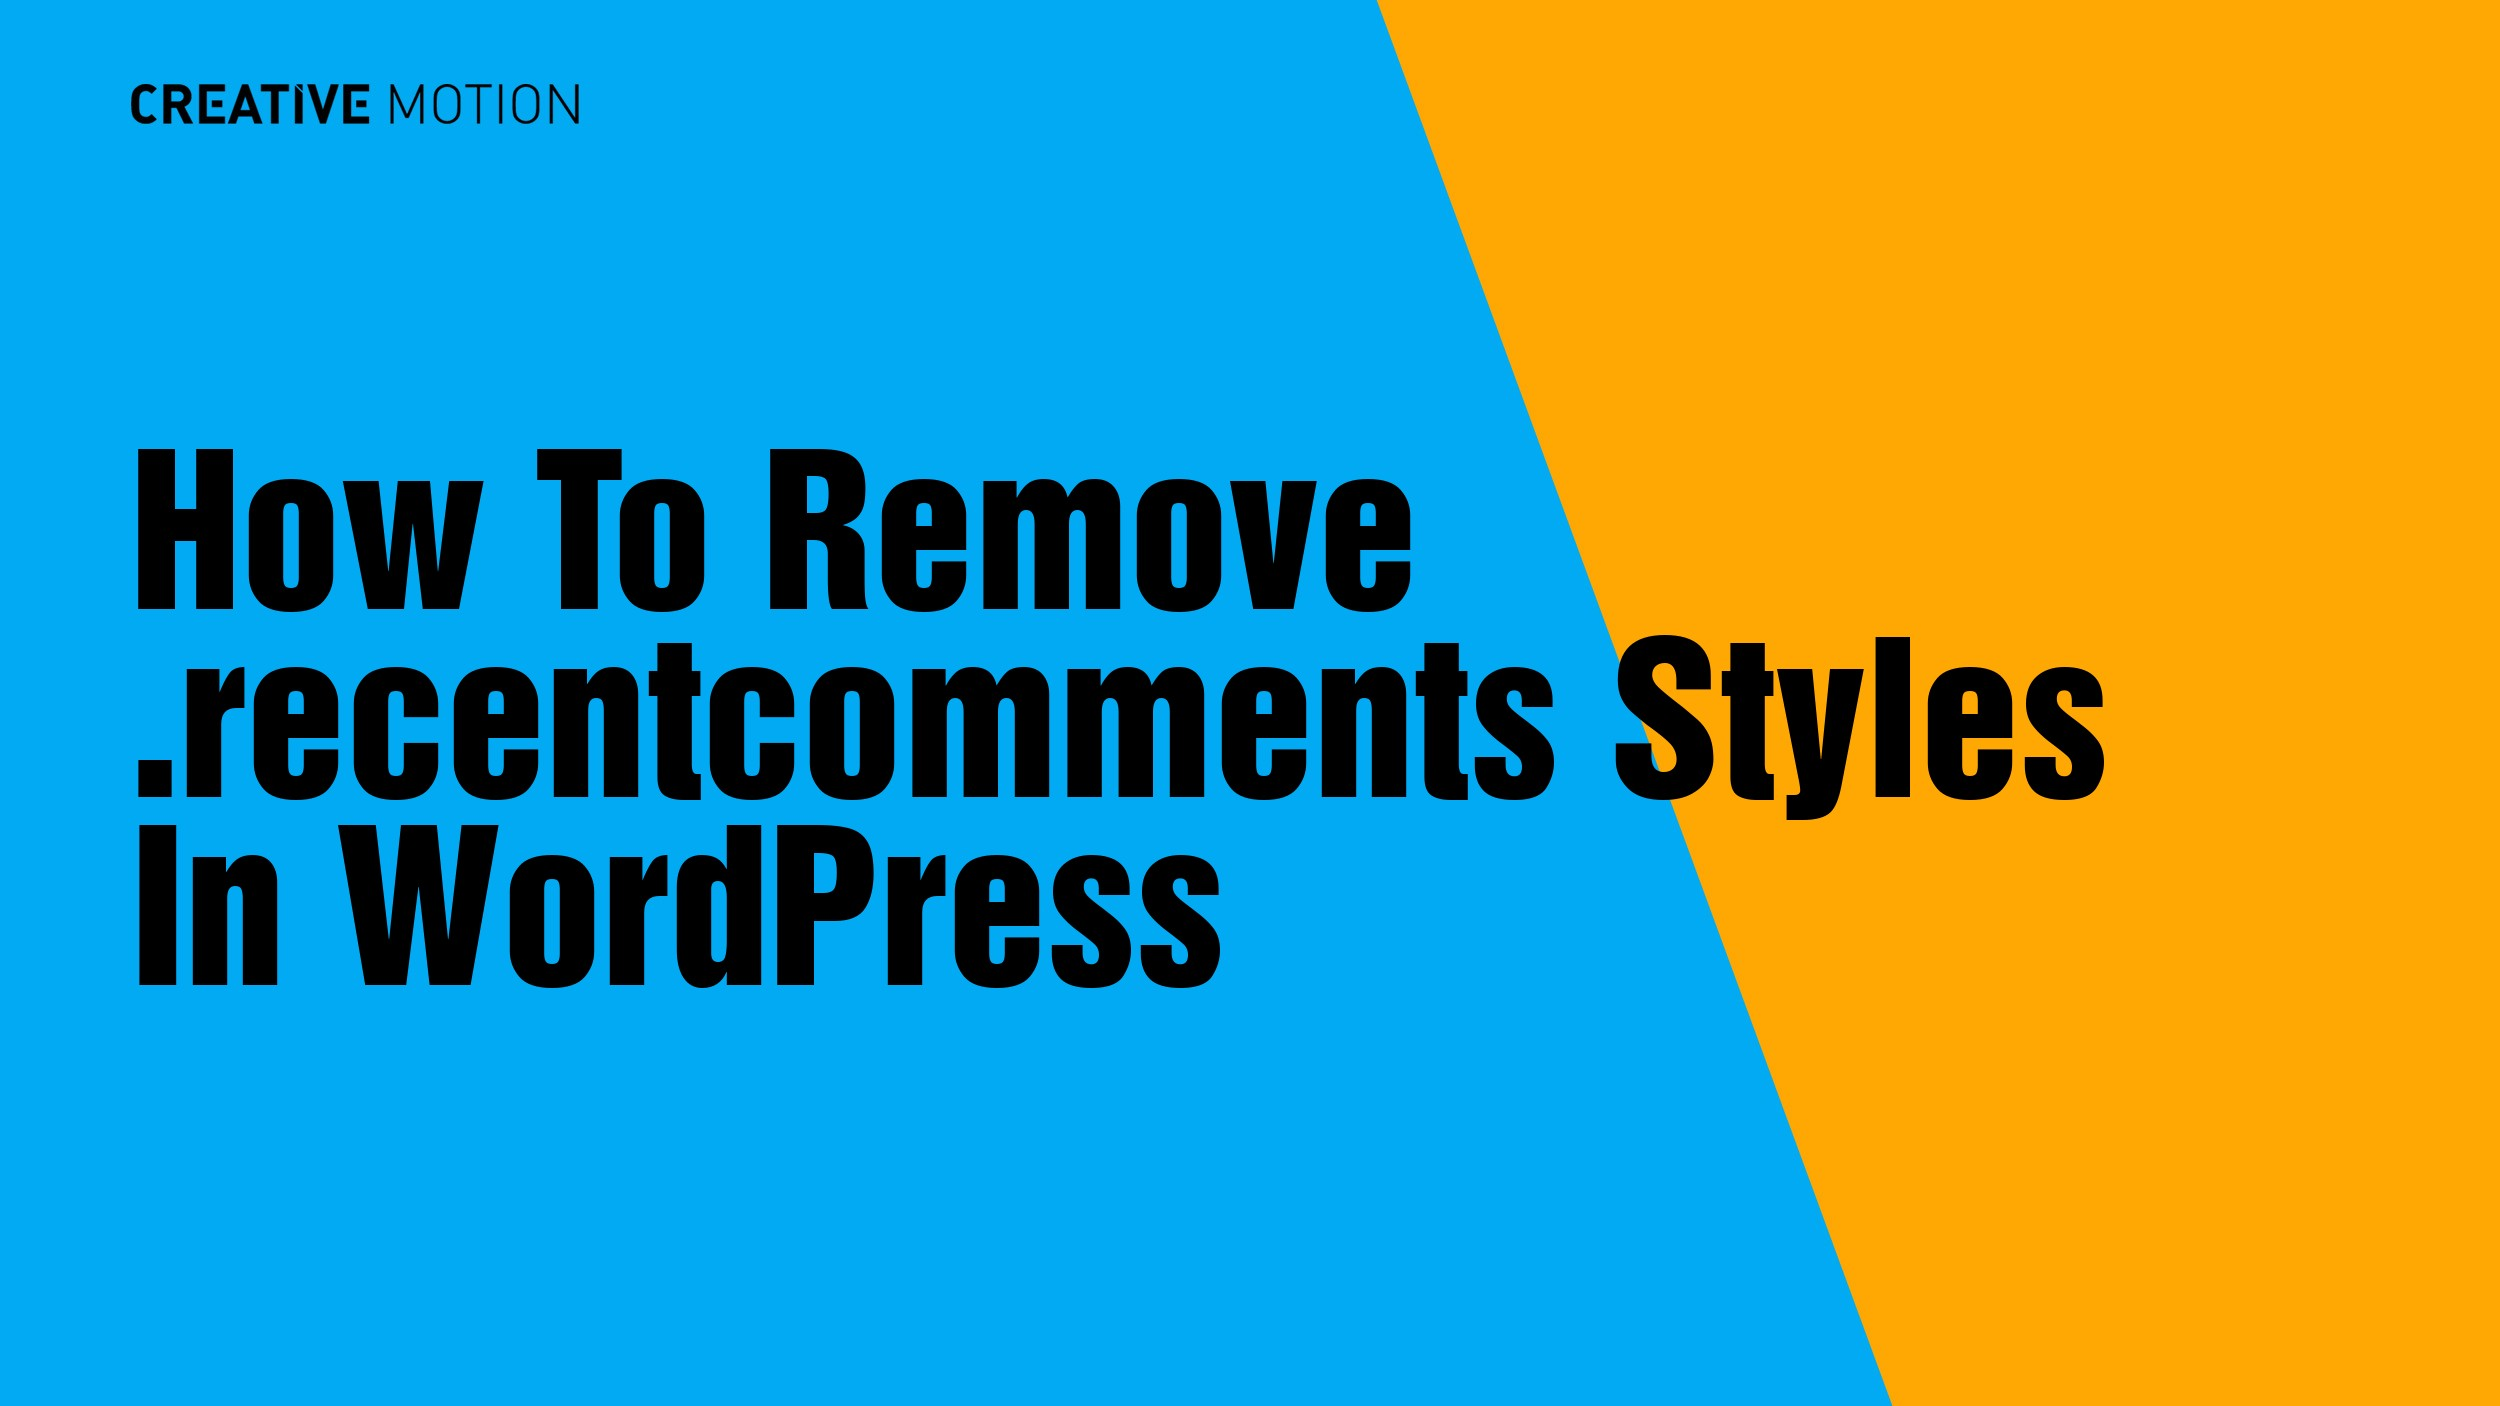 How To Remove .recentcomments Styles In WordPress